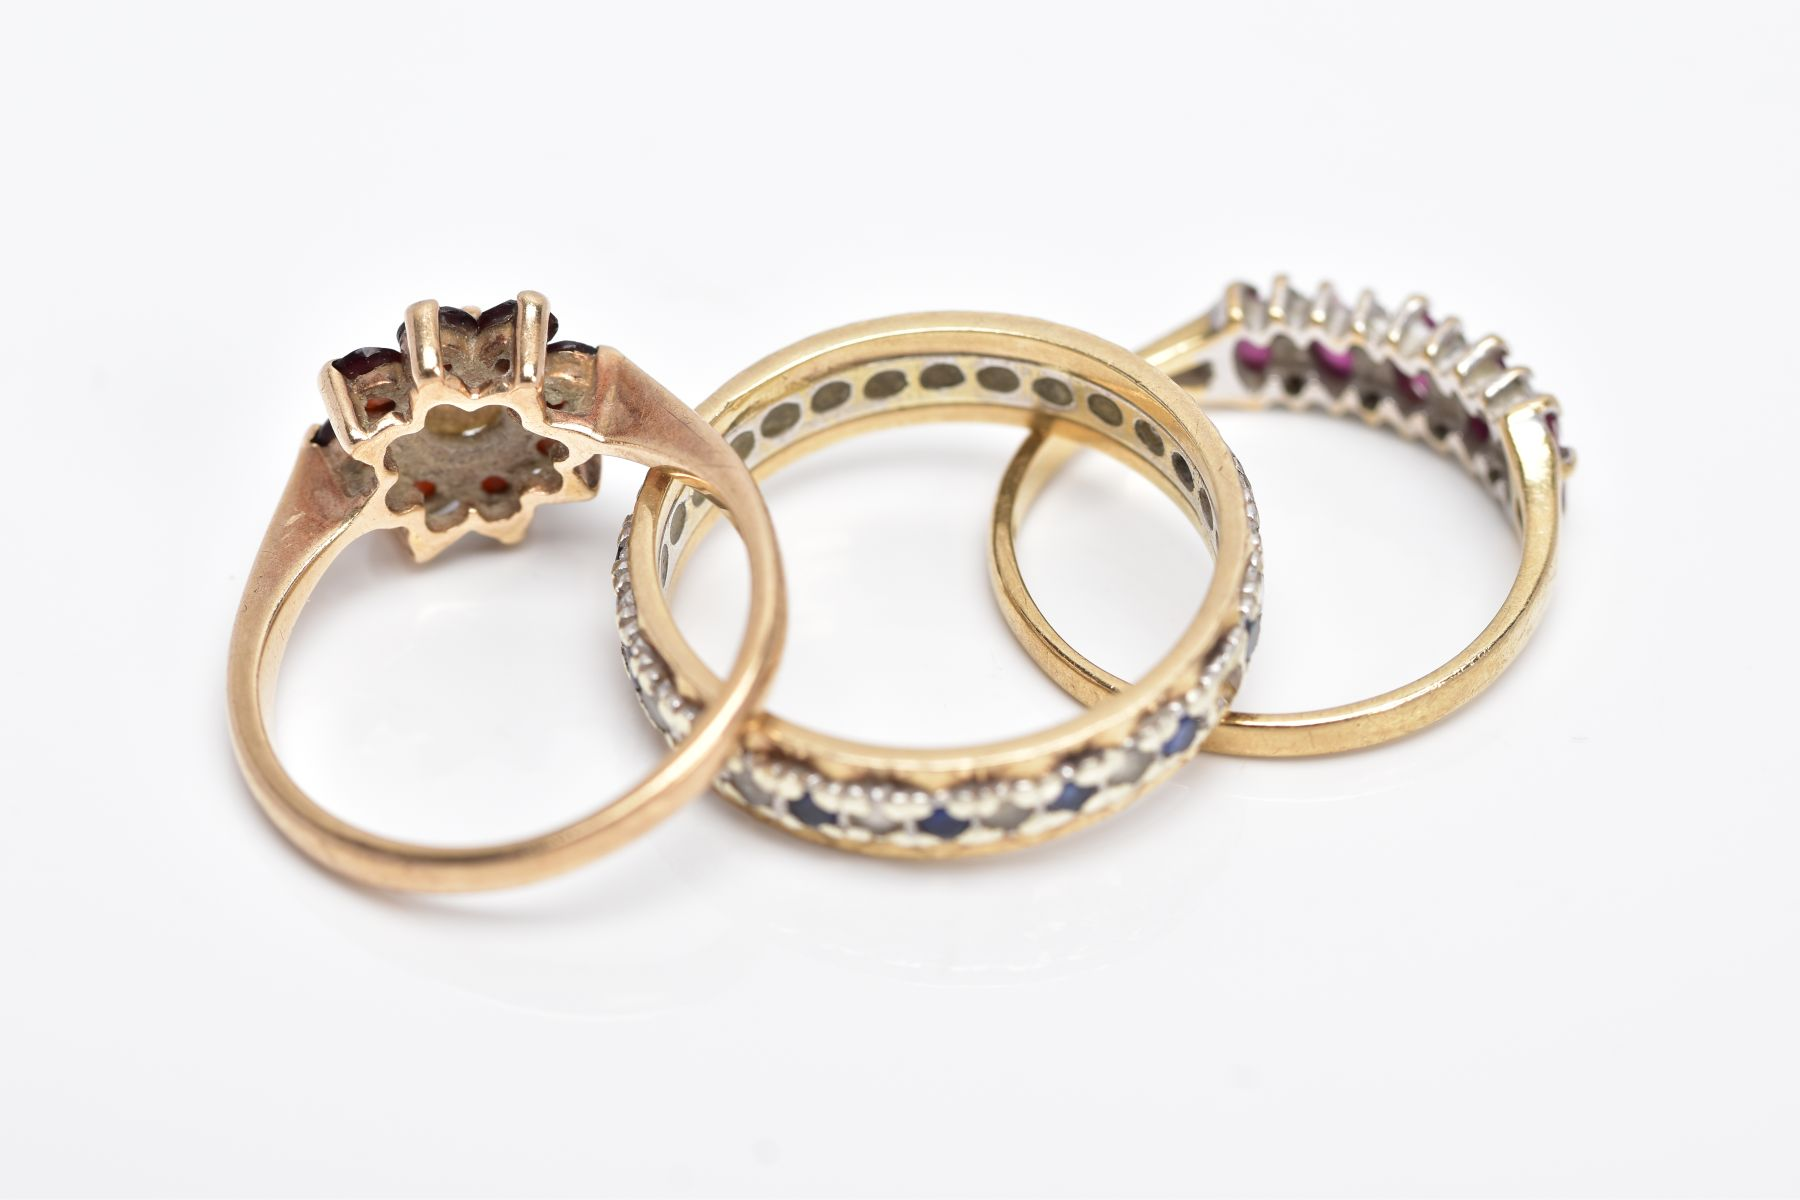 THREE 9CT GOLD GEM SET RINGS, to include a full eternity ring set with colourless spinel and blue - Image 3 of 4